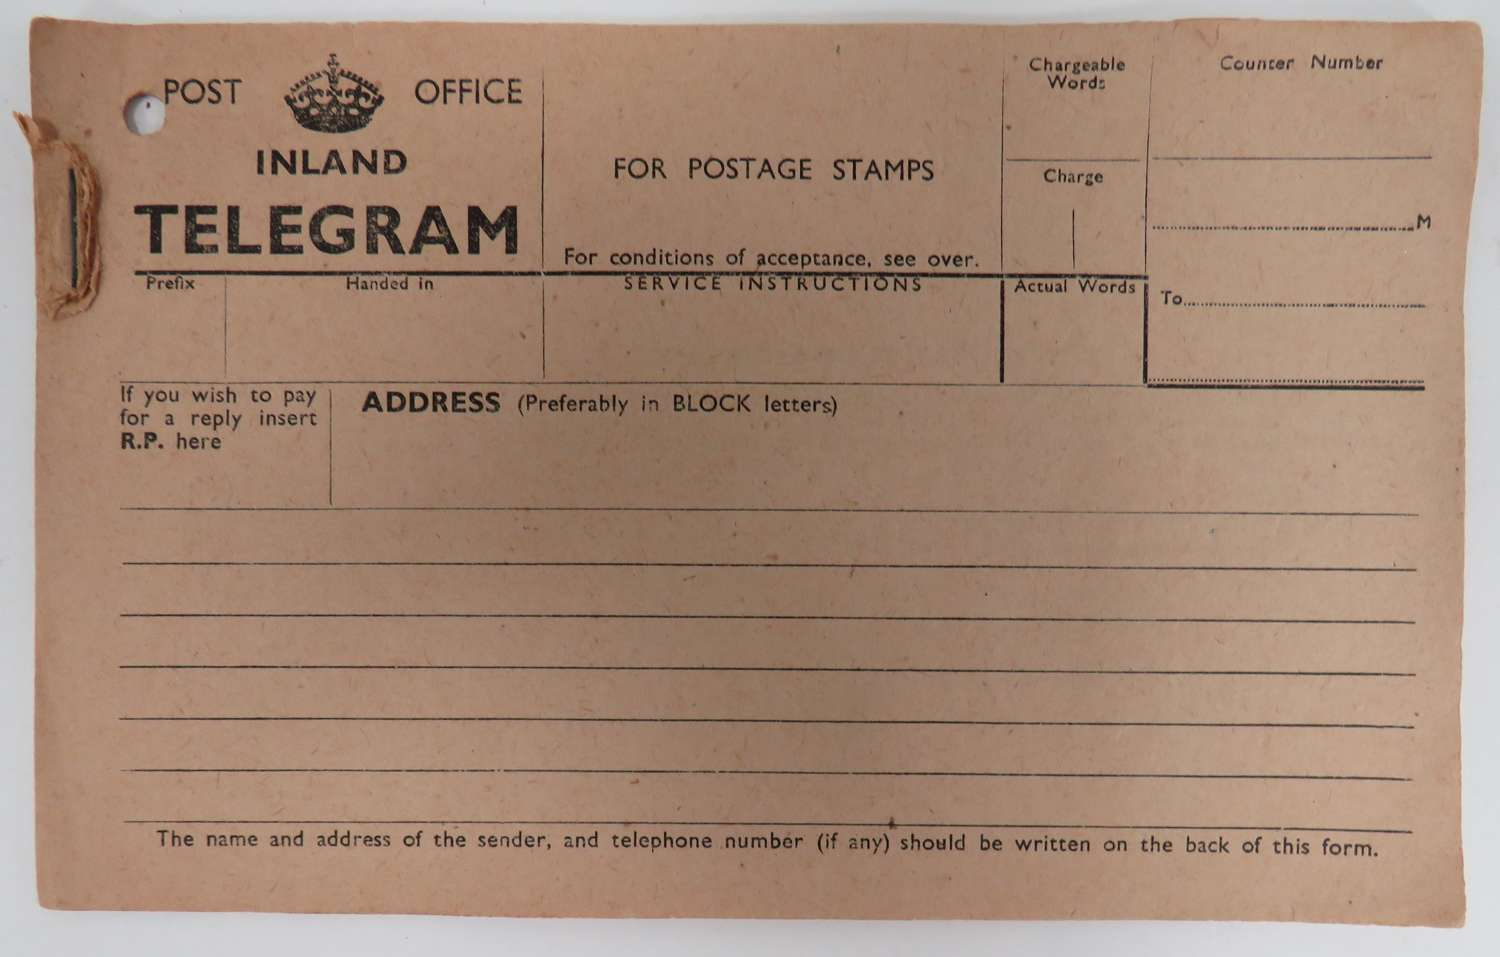 WW 2 Unused Post Office Telegrams